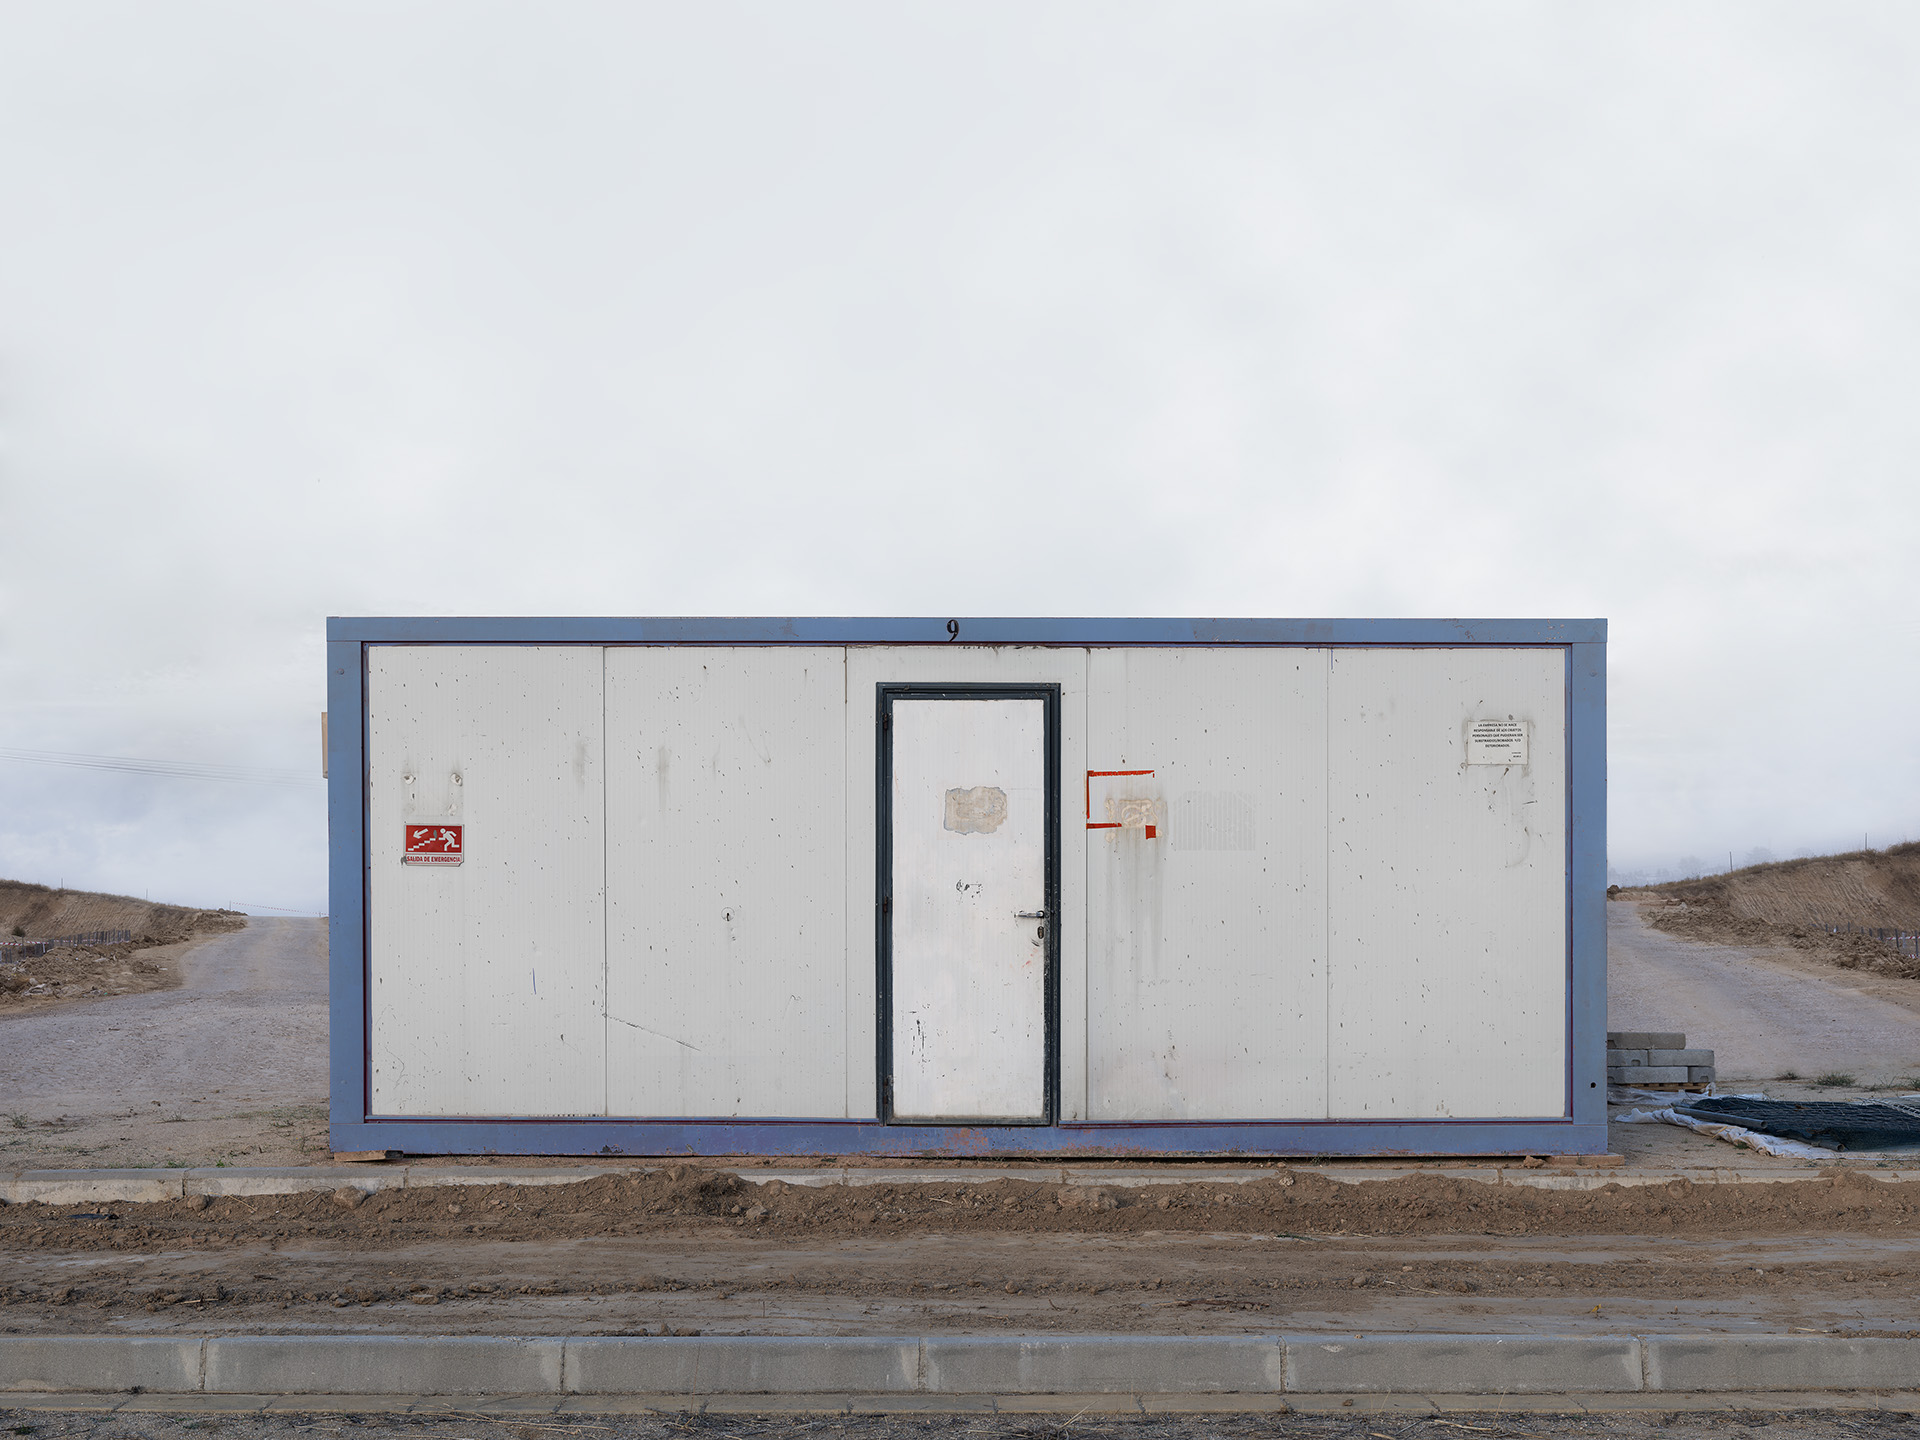 Container #3 (2014) - Manuel Franquelo-Giner